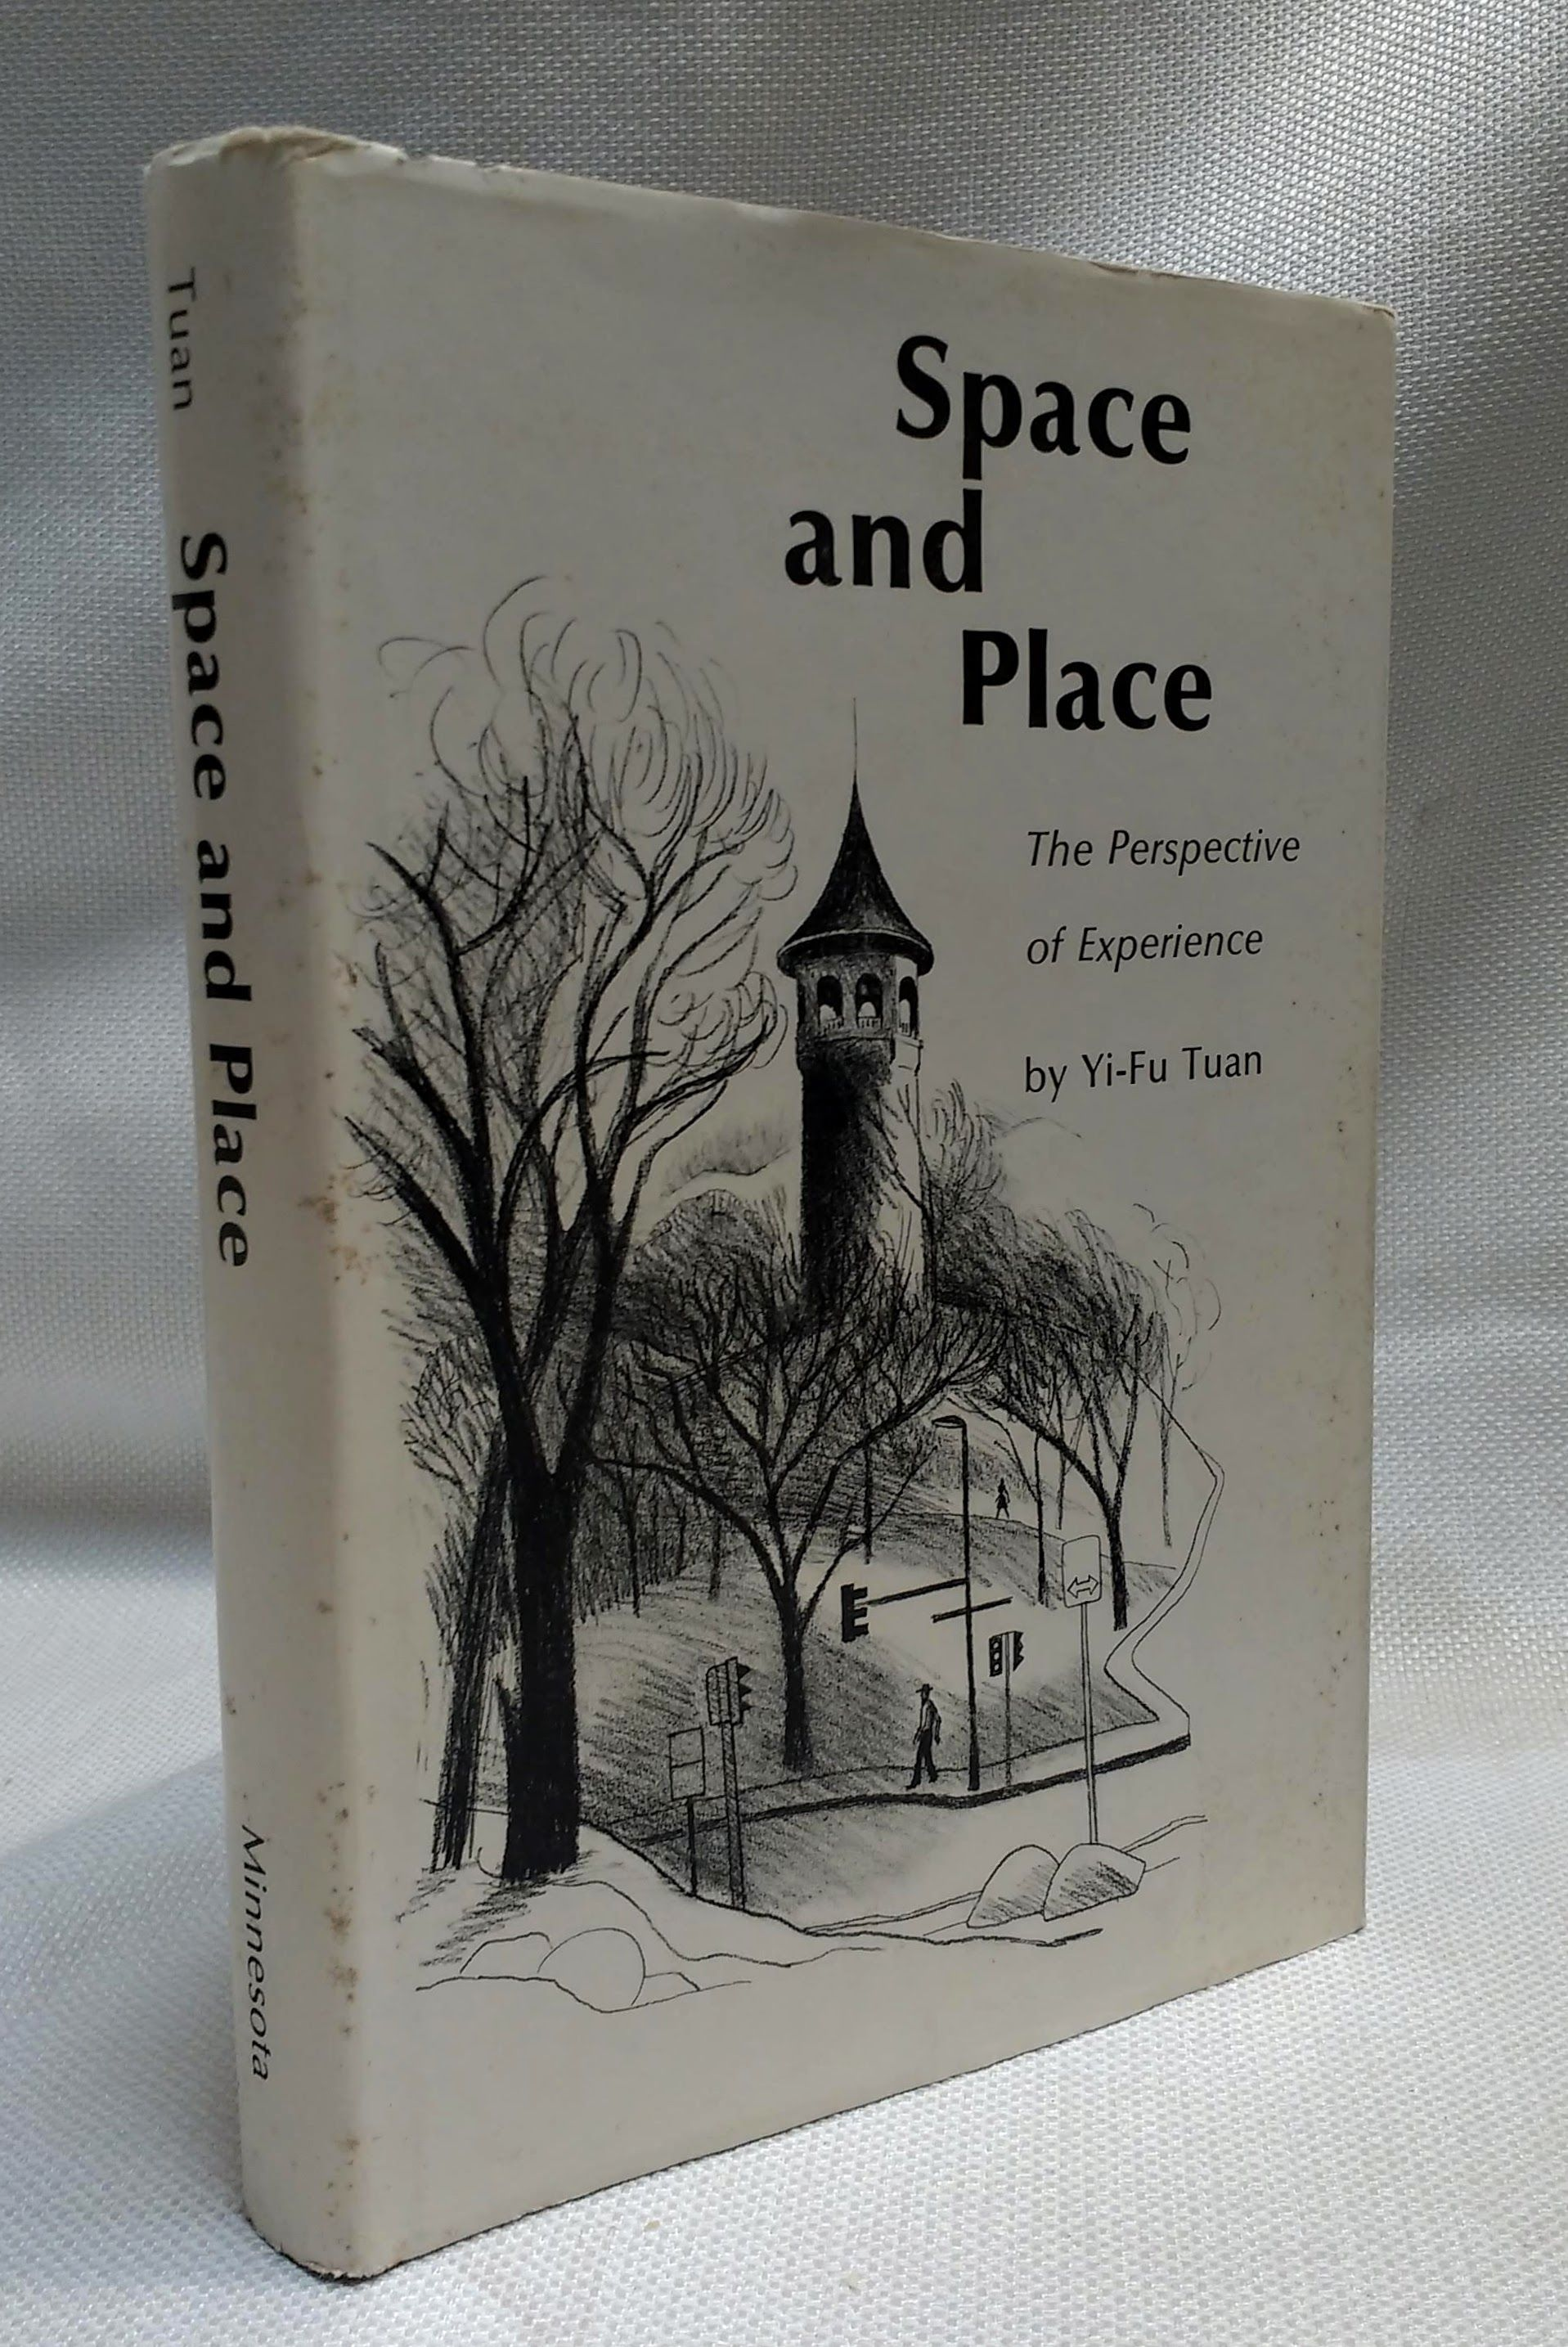 Space and Place: The Perspective of Experience, Yi-Fu Tuan